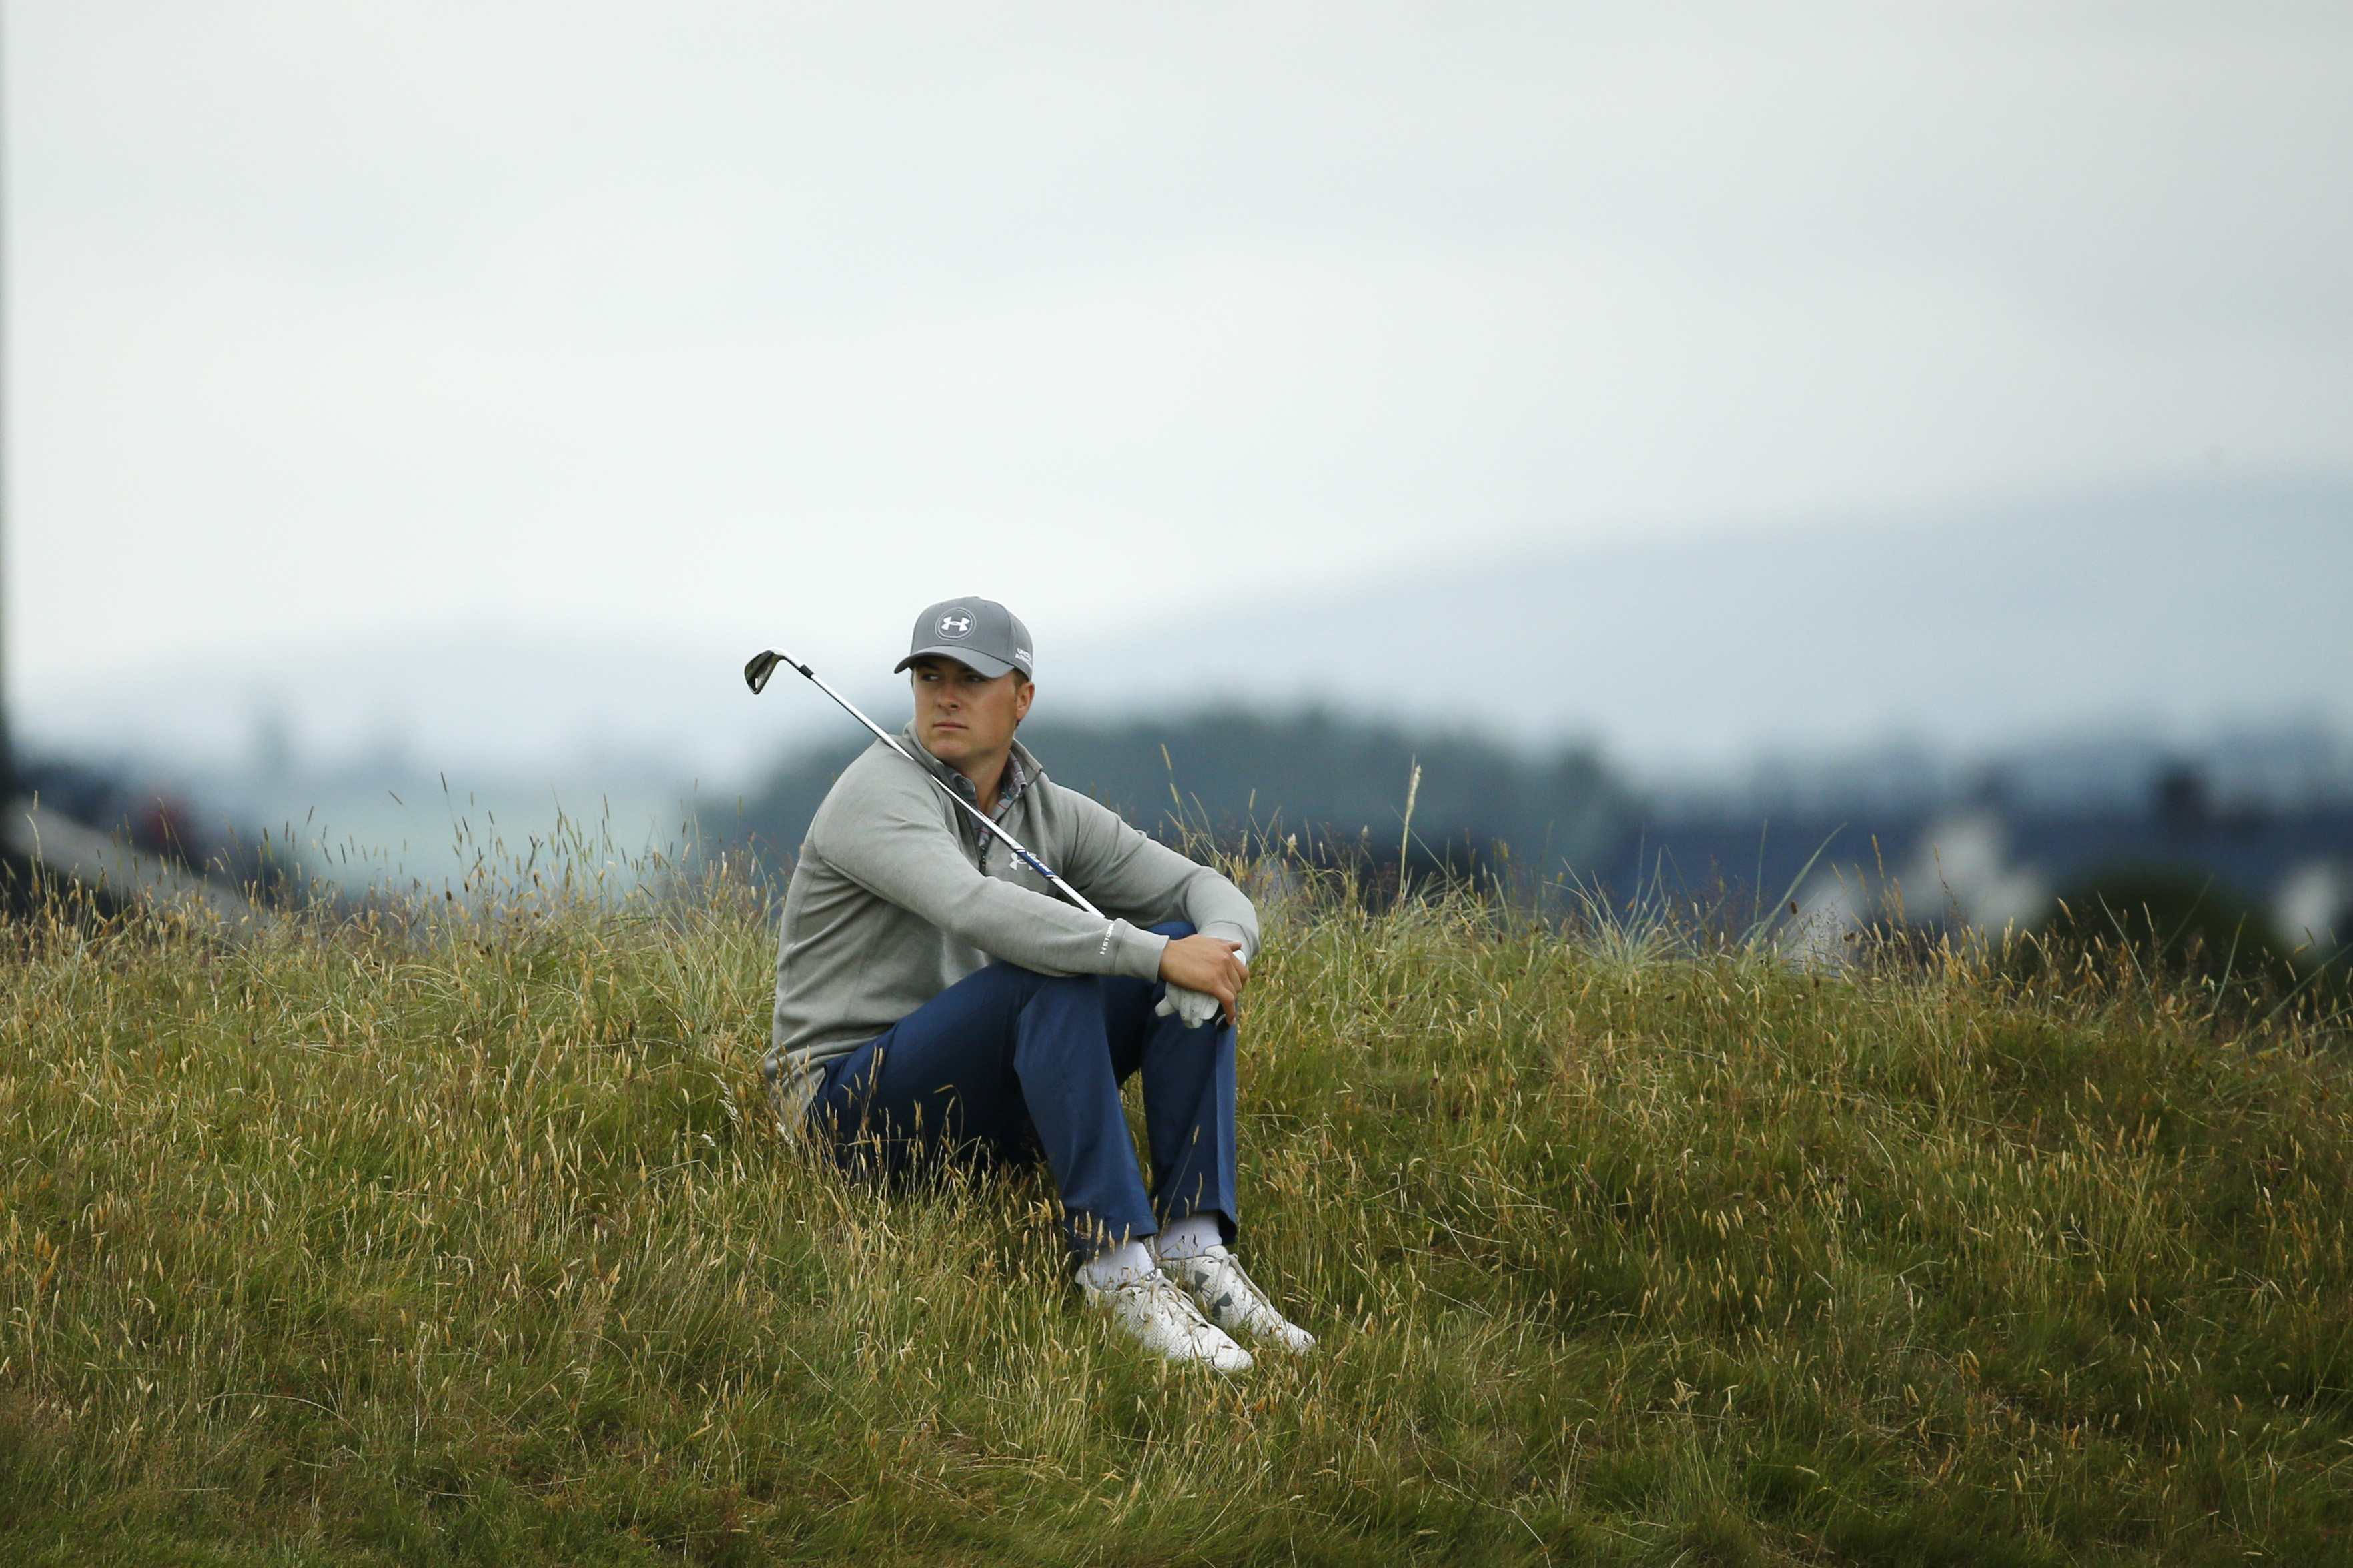 United States' Jordan Spieth sits in the rough on hole four during a practice round at the British Open Golf Championship at the Old Course, St. Andrews, Scotland, Tuesday, July 14, 2015. (AP Photo/Jon